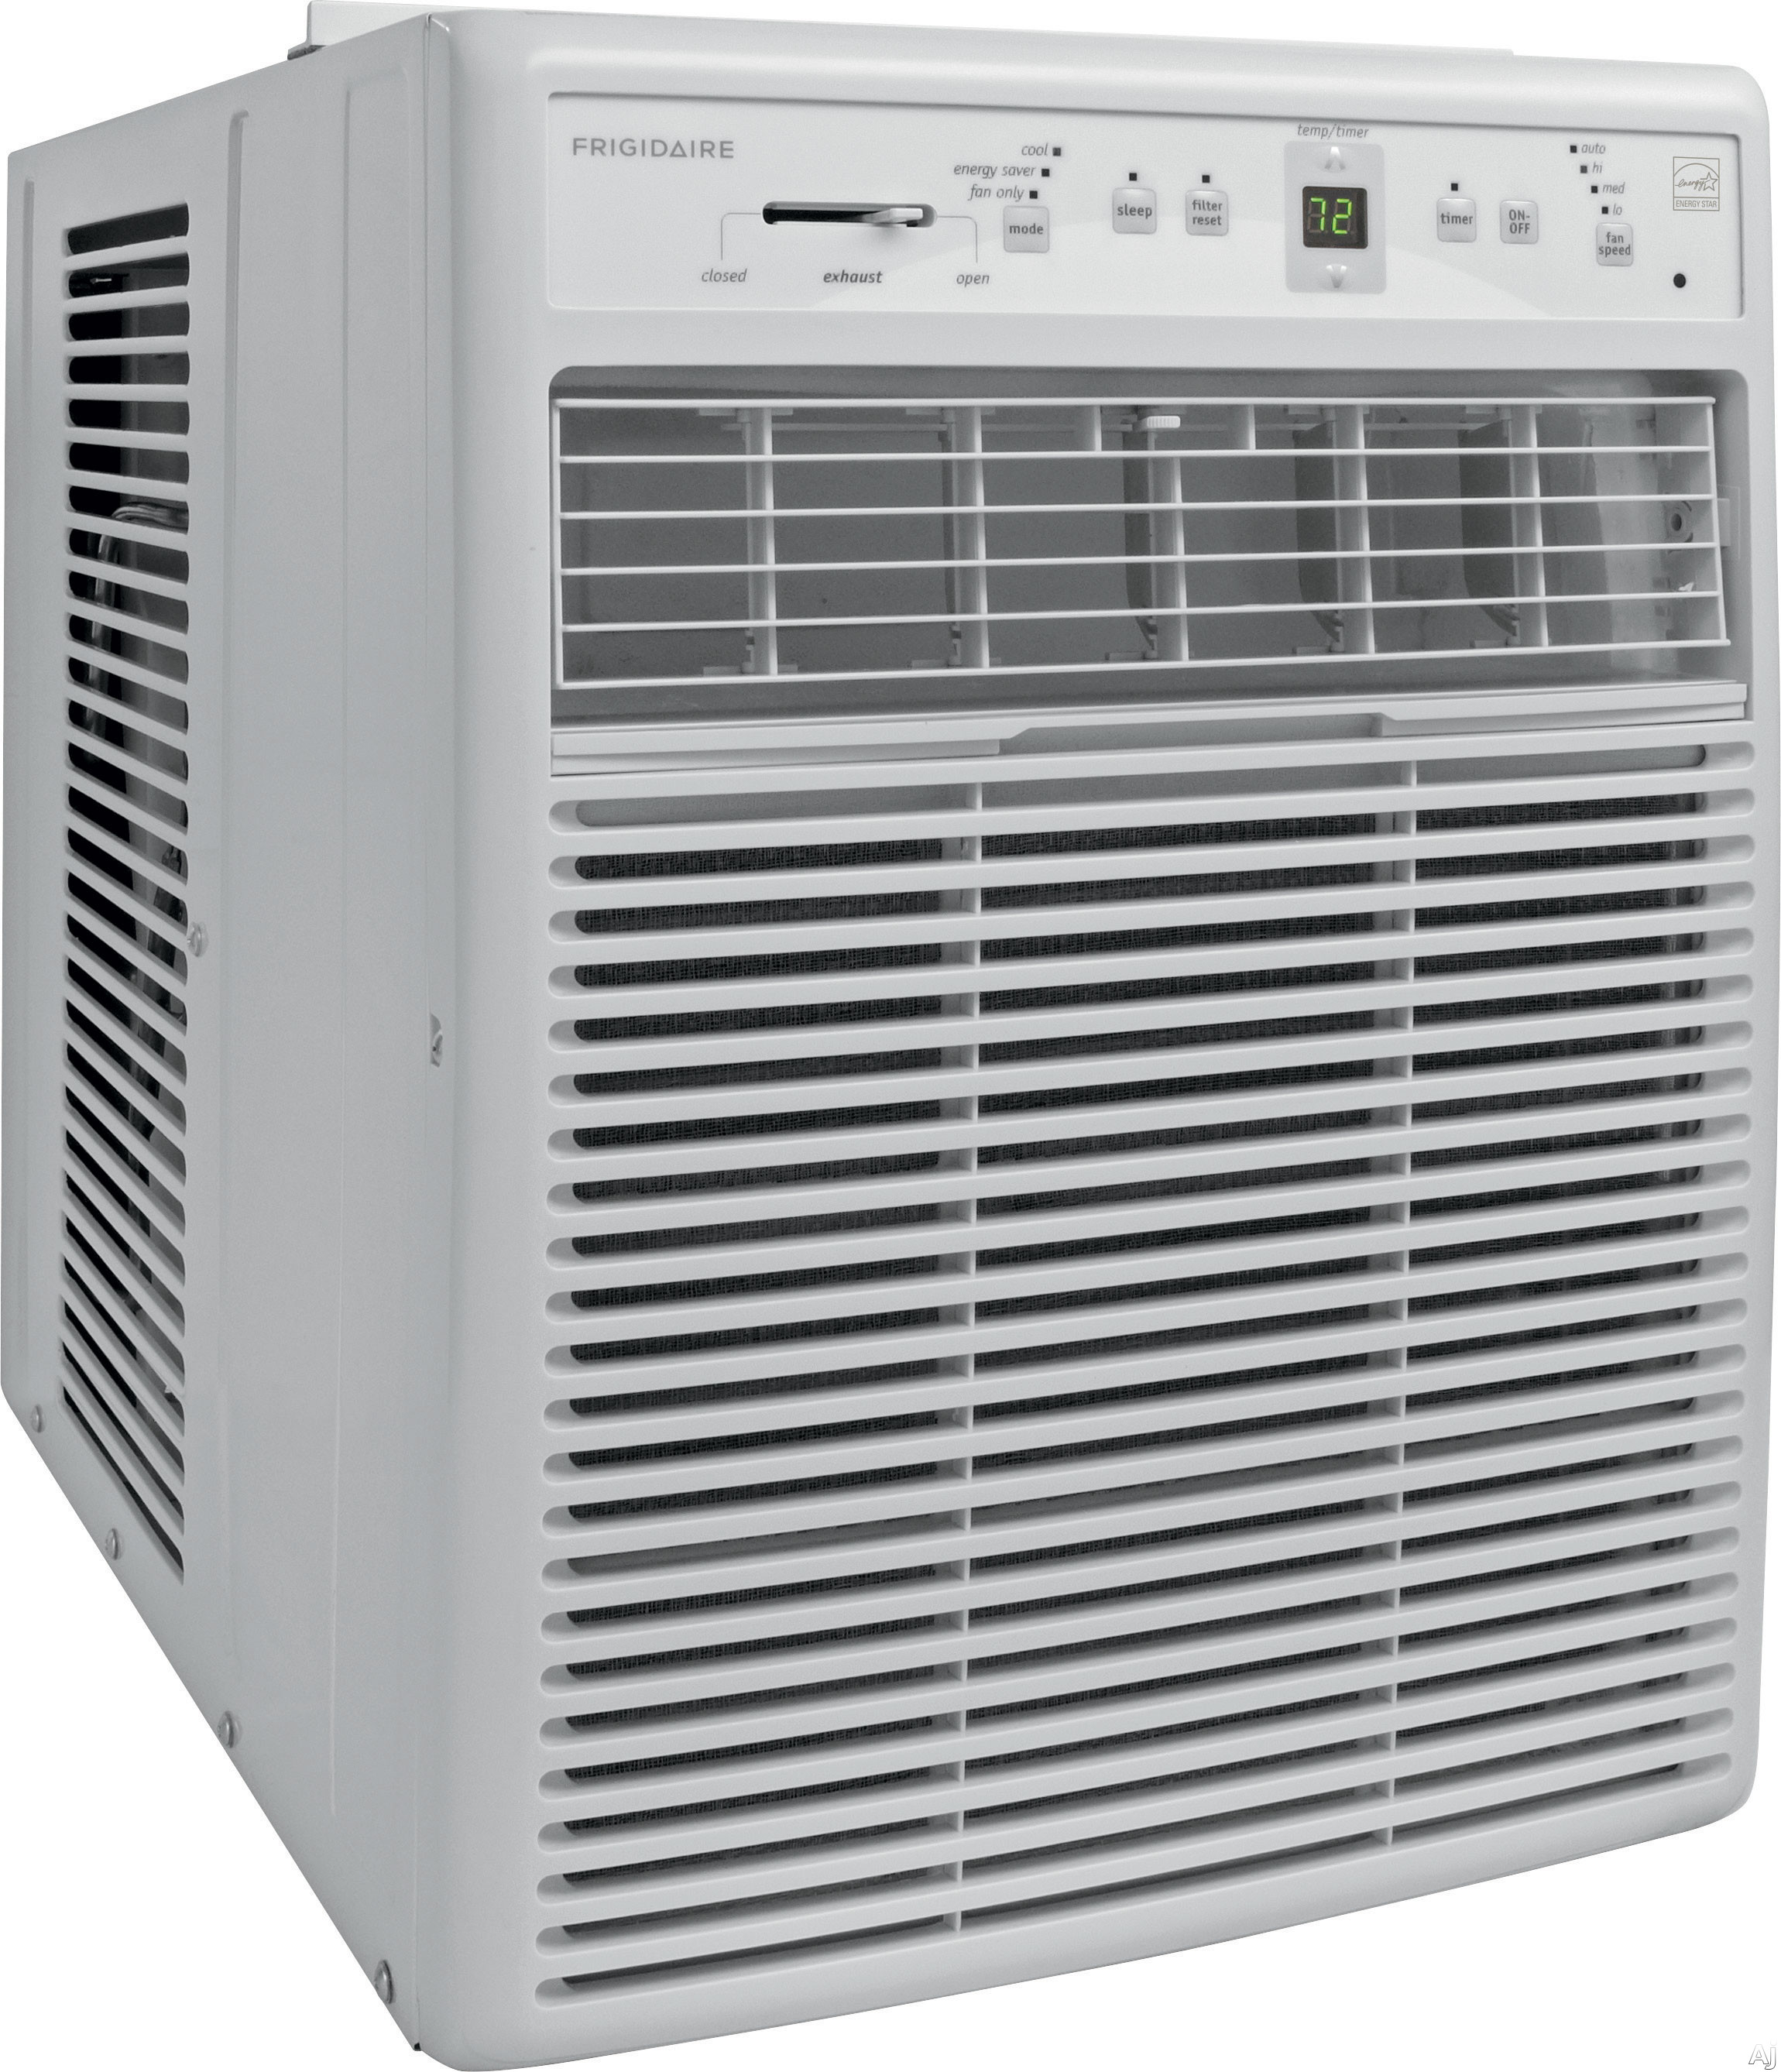 Home > Air Conditioners > Room Air Conditioners > FFRS0833Q1 #60734C